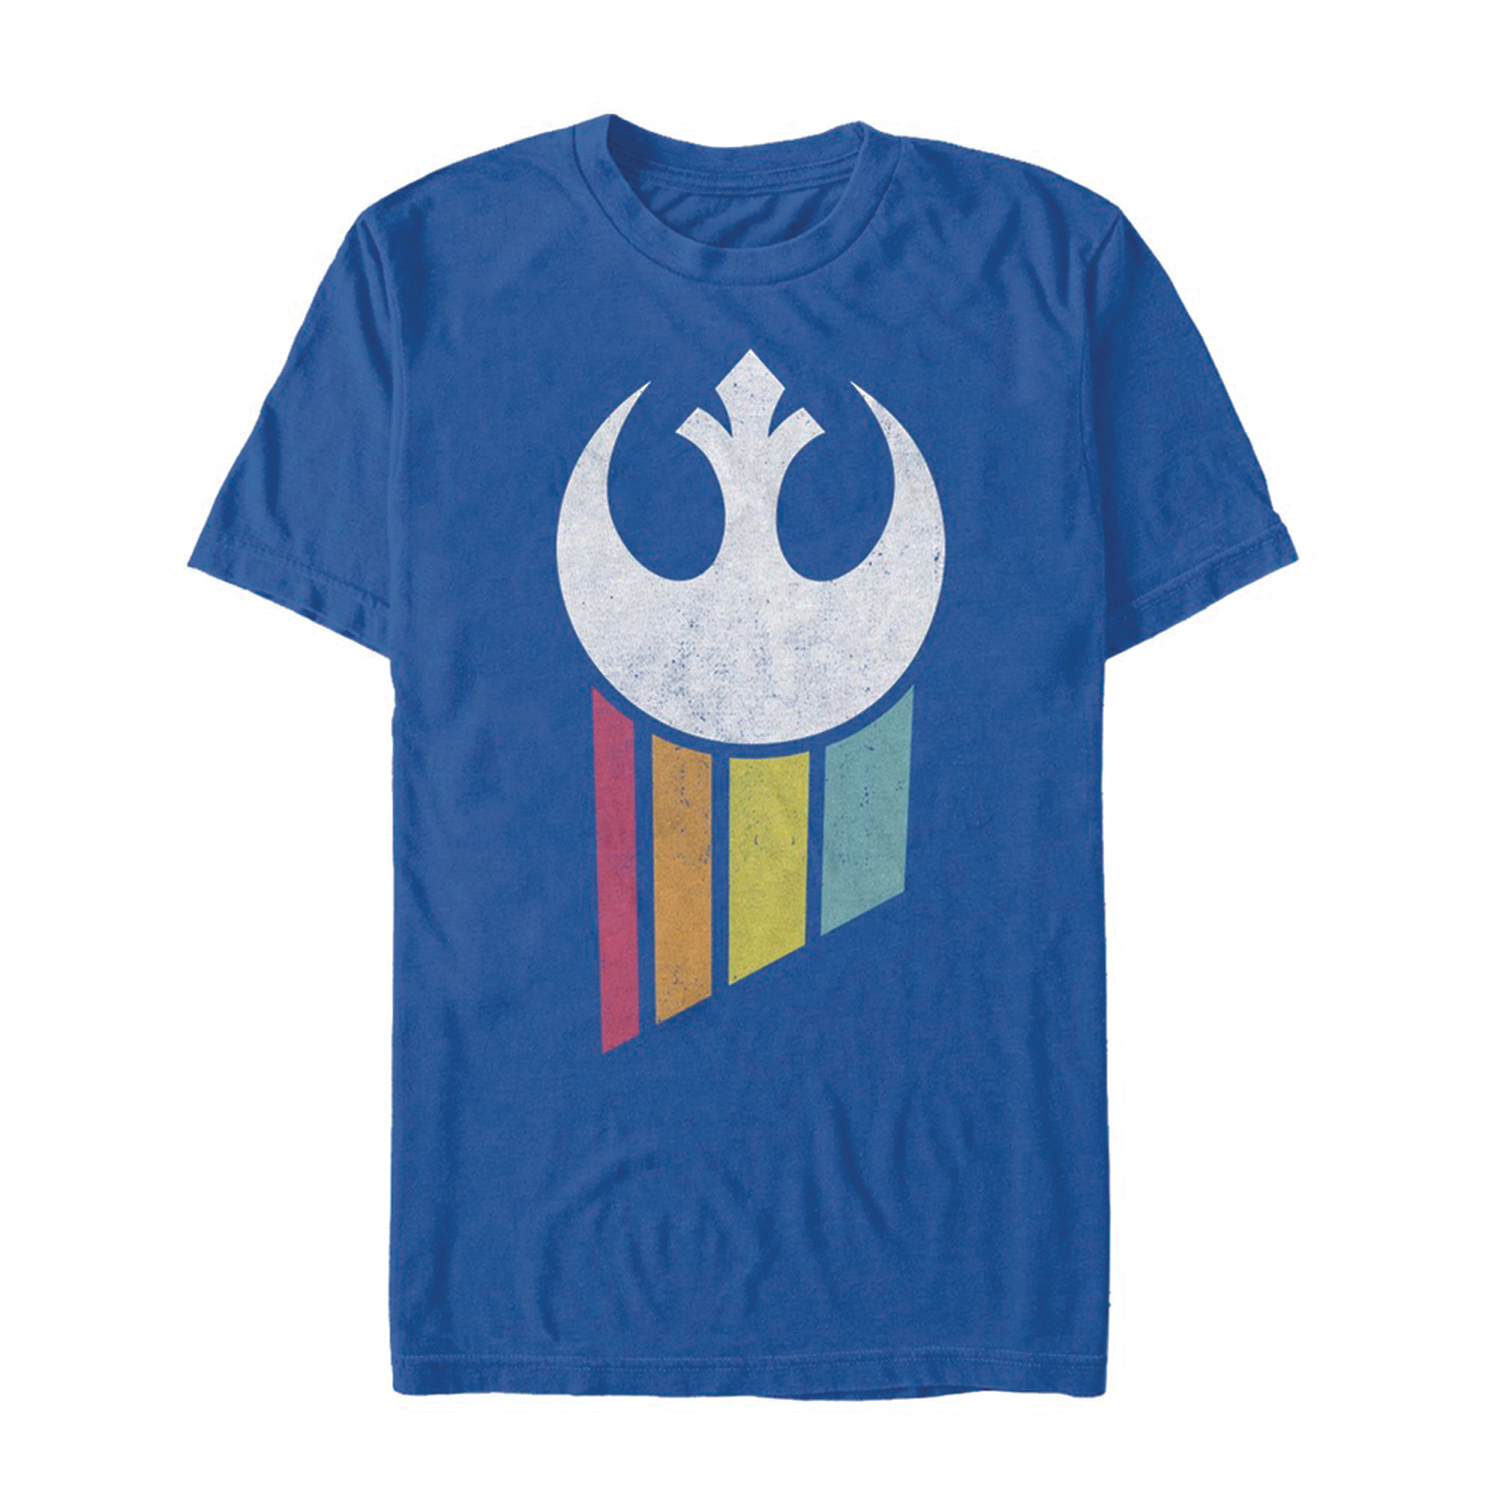 STAR WARS RAINBOW REBEL LOGO T/S LG